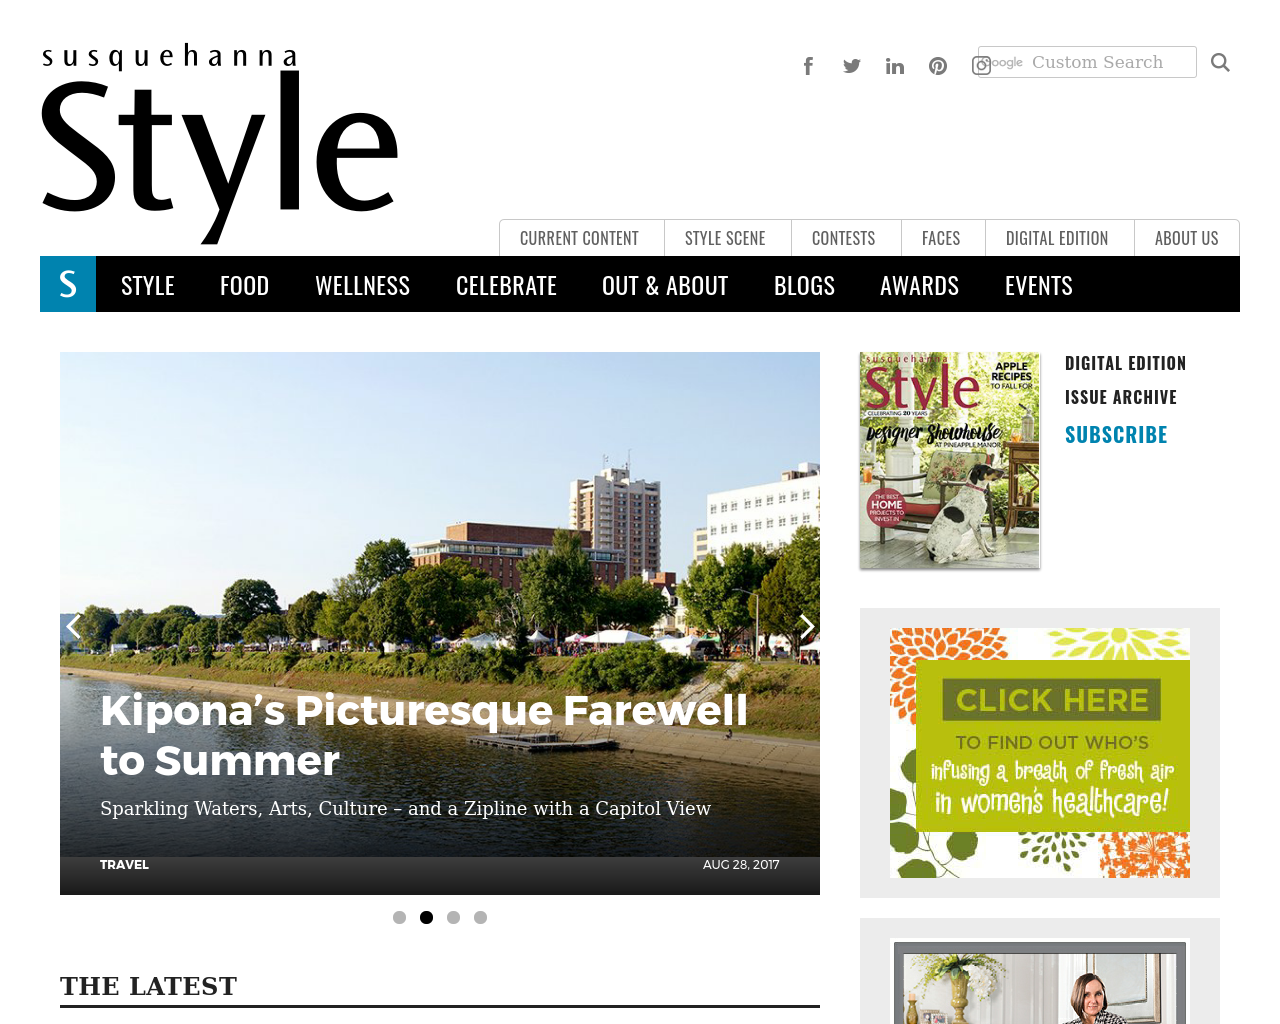 Susquehanna-Style-Advertising-Reviews-Pricing